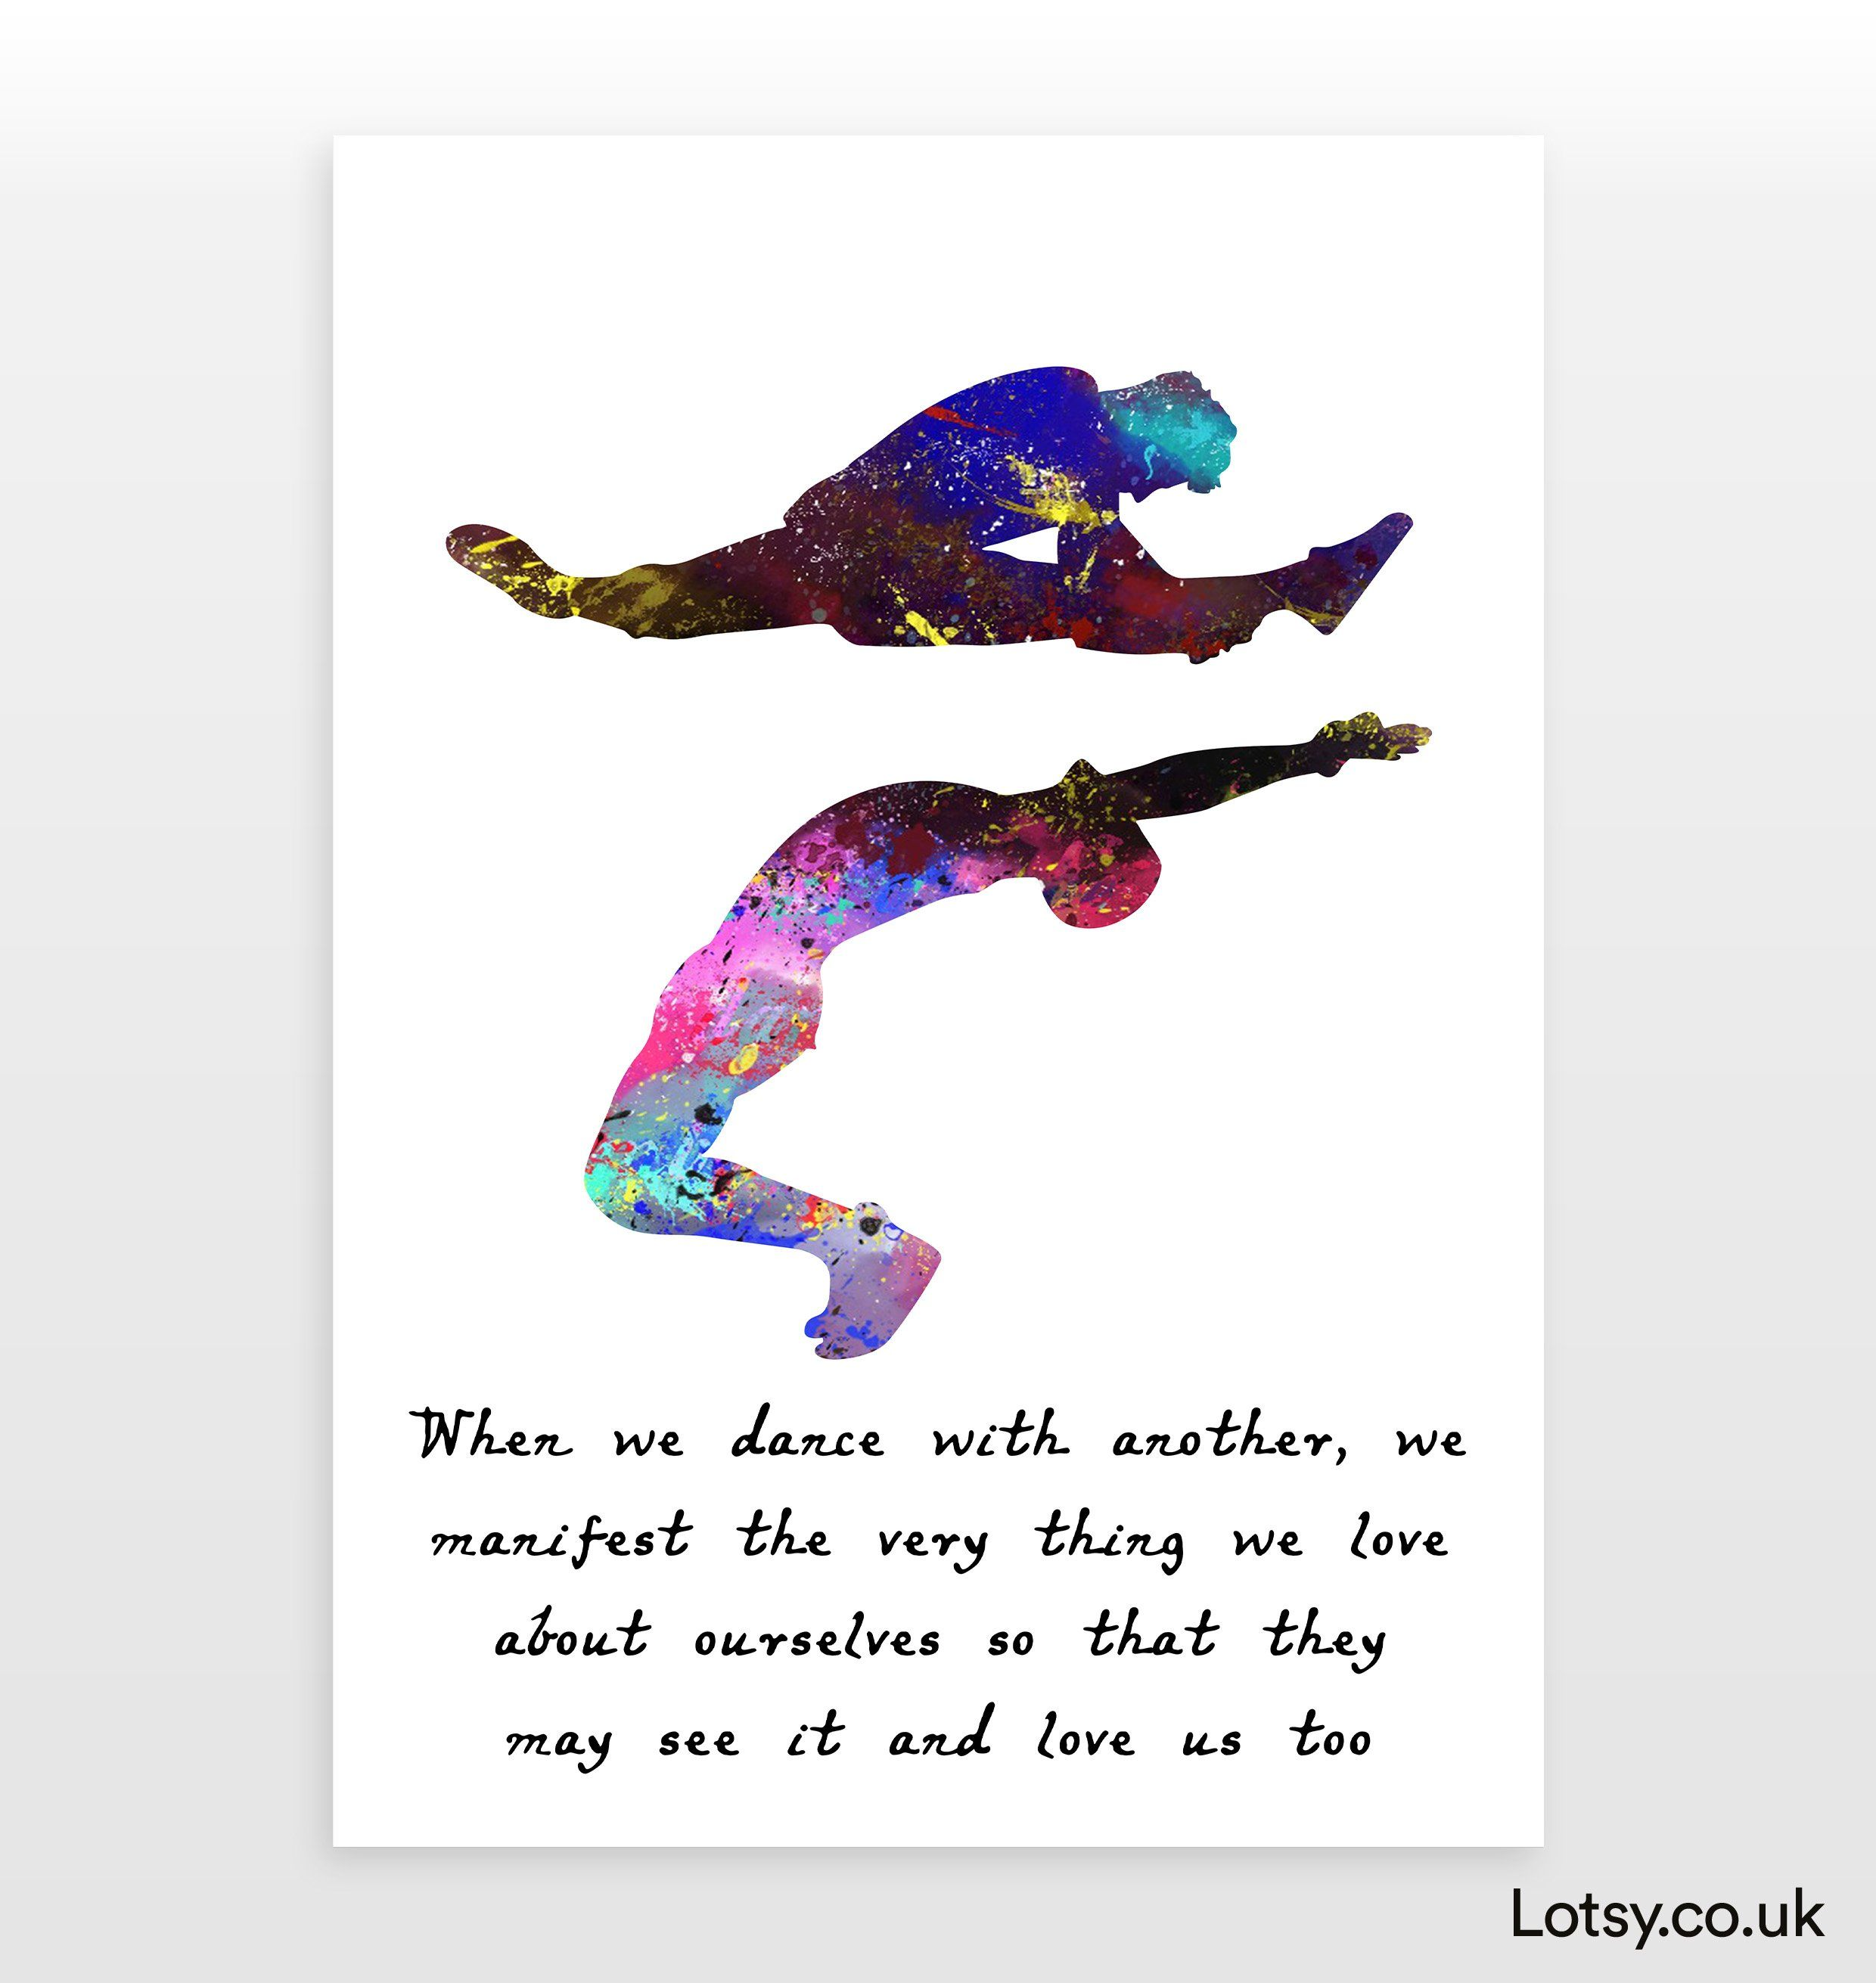 Ballet Quote - When we dance with another, we - A3 - (297mm x 420mm) (11.7inch x 16.5inch)